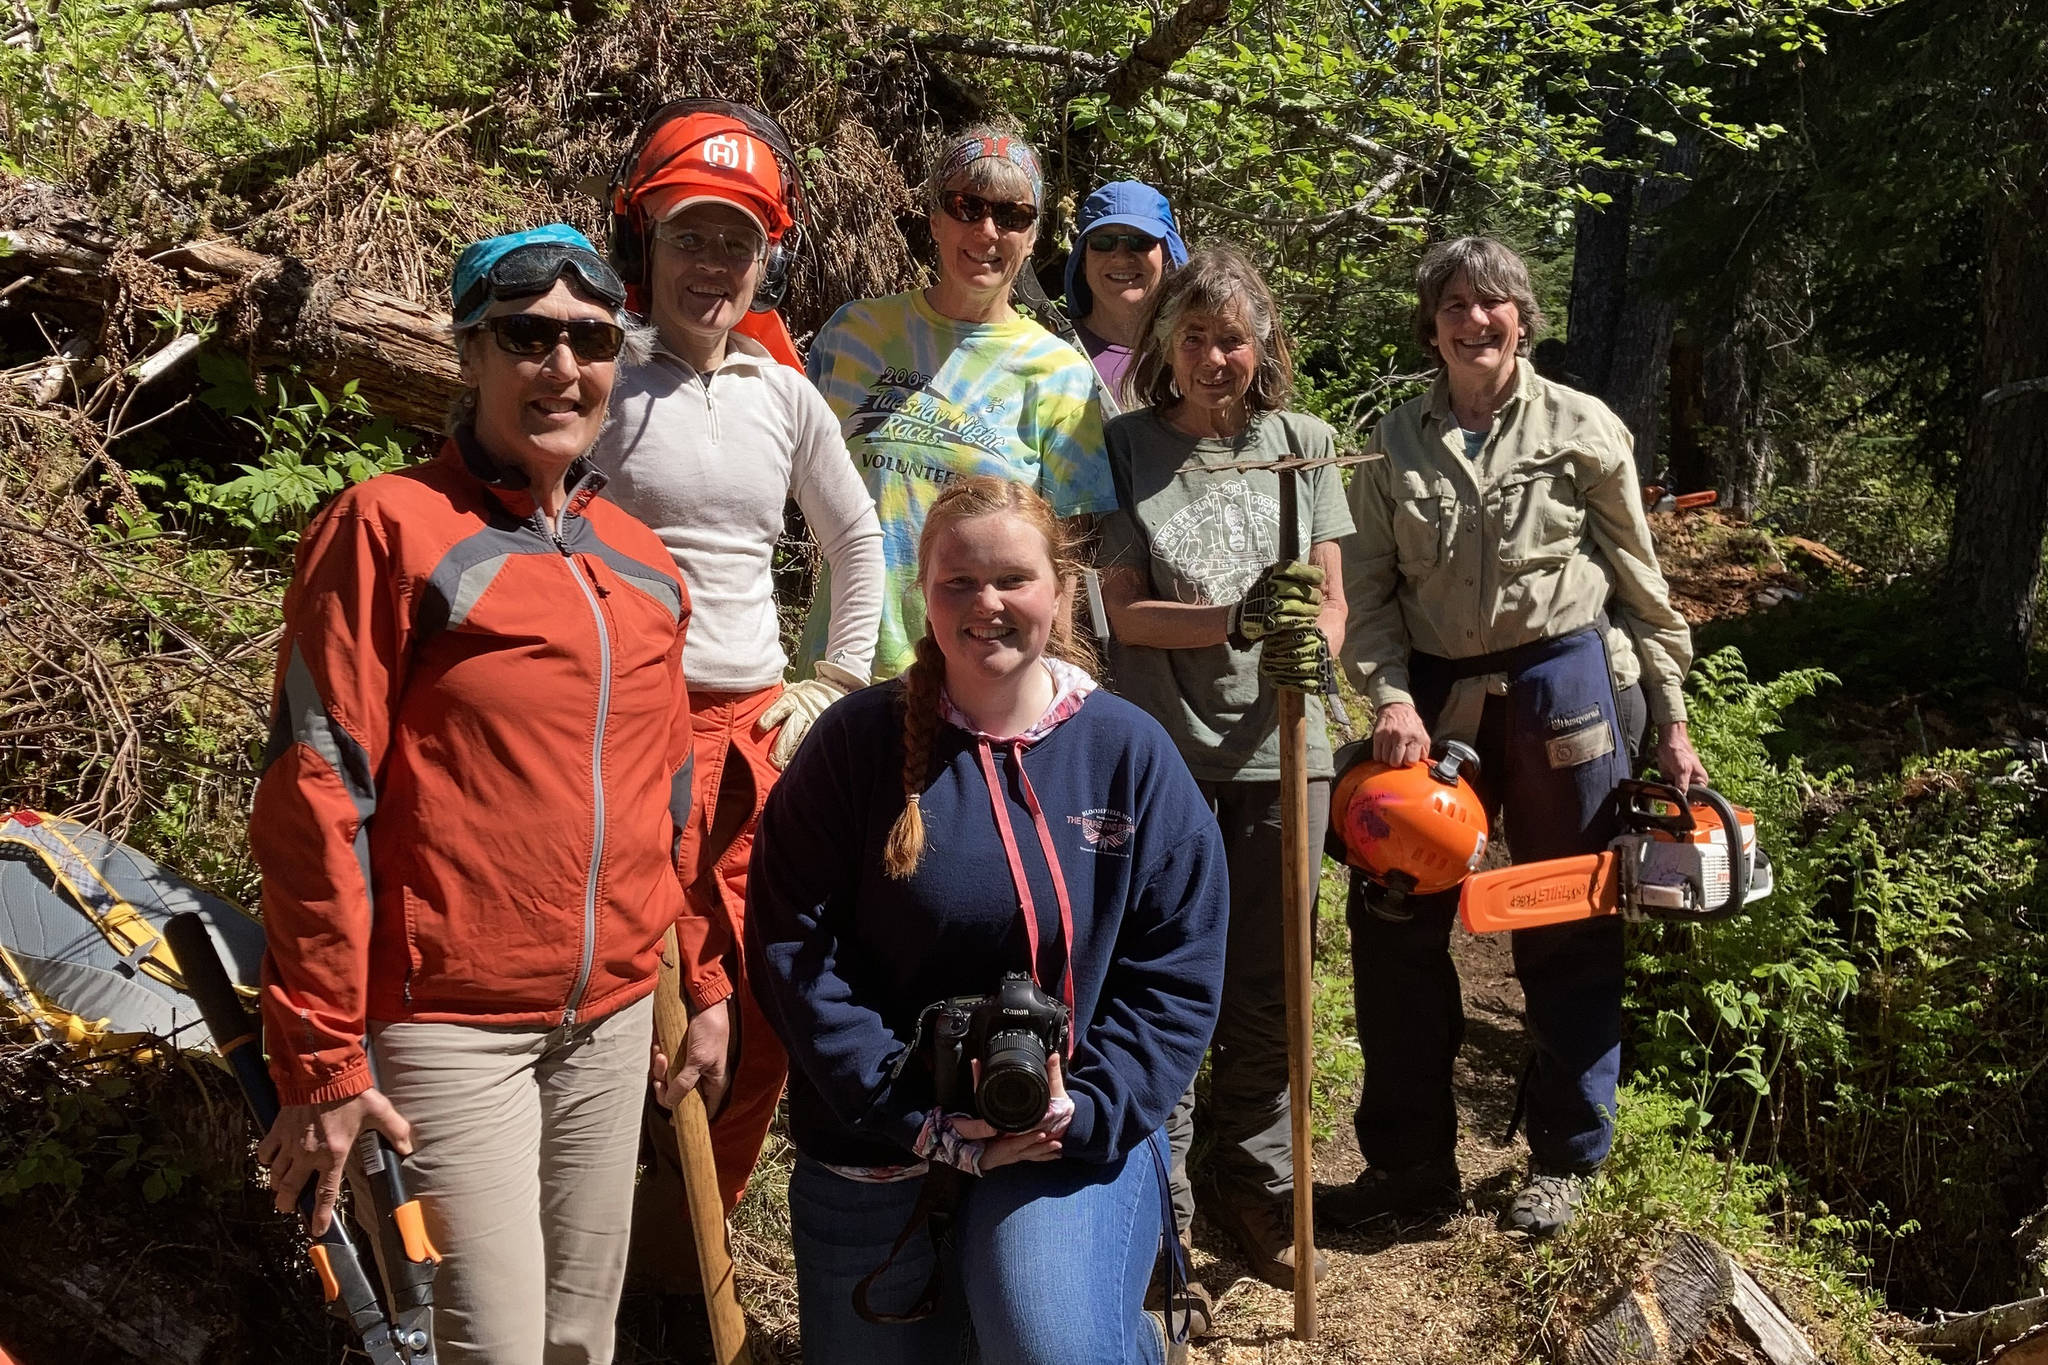 Homer News reporter Sarah Knapp (kneeling) is pictured with the Friends of Kachemak Bay State Park volunteer group who cleared South Eldred Trail during National Trails Day on June 5. The group was able to clear half a mile of the trail. Pictured left to right are Kristine Moerlein, Amy Holman, Kathy Sarns, Lyn Maslow, Ruth Dickerson and Kris Holderied. (Photo by Michael Singer)